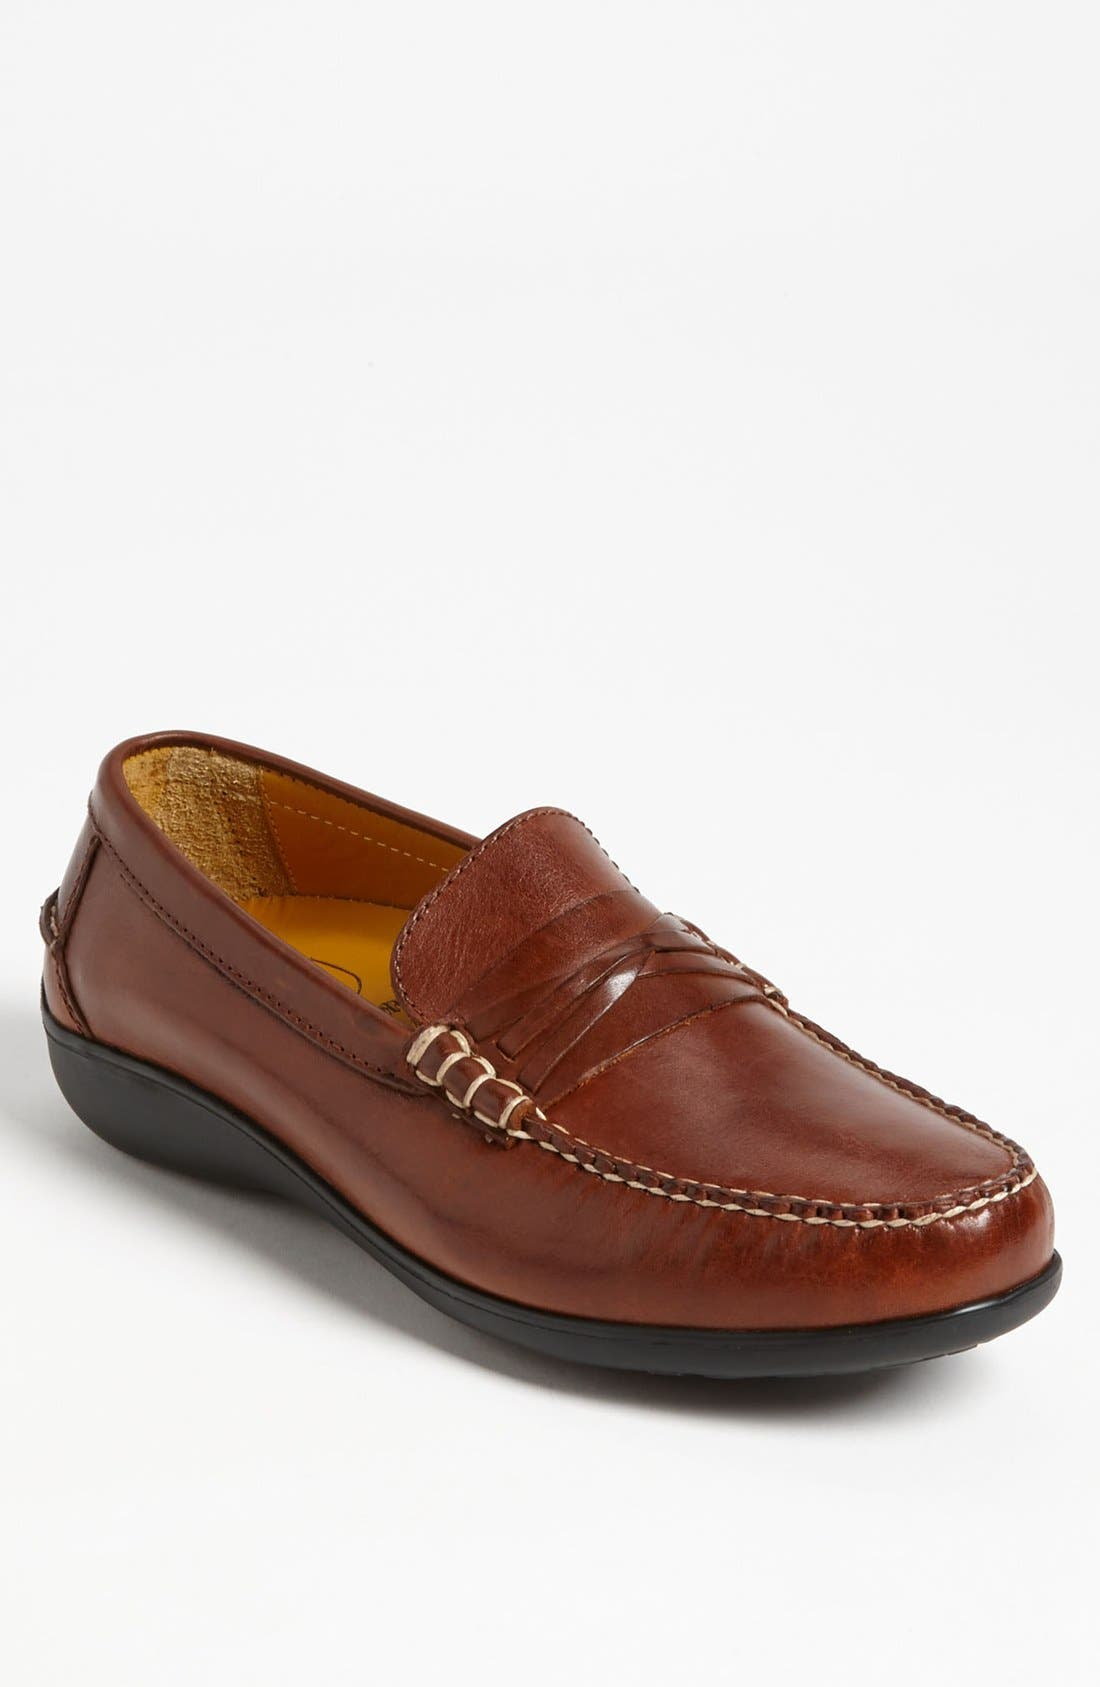 Neil M 'Truman' Loafer